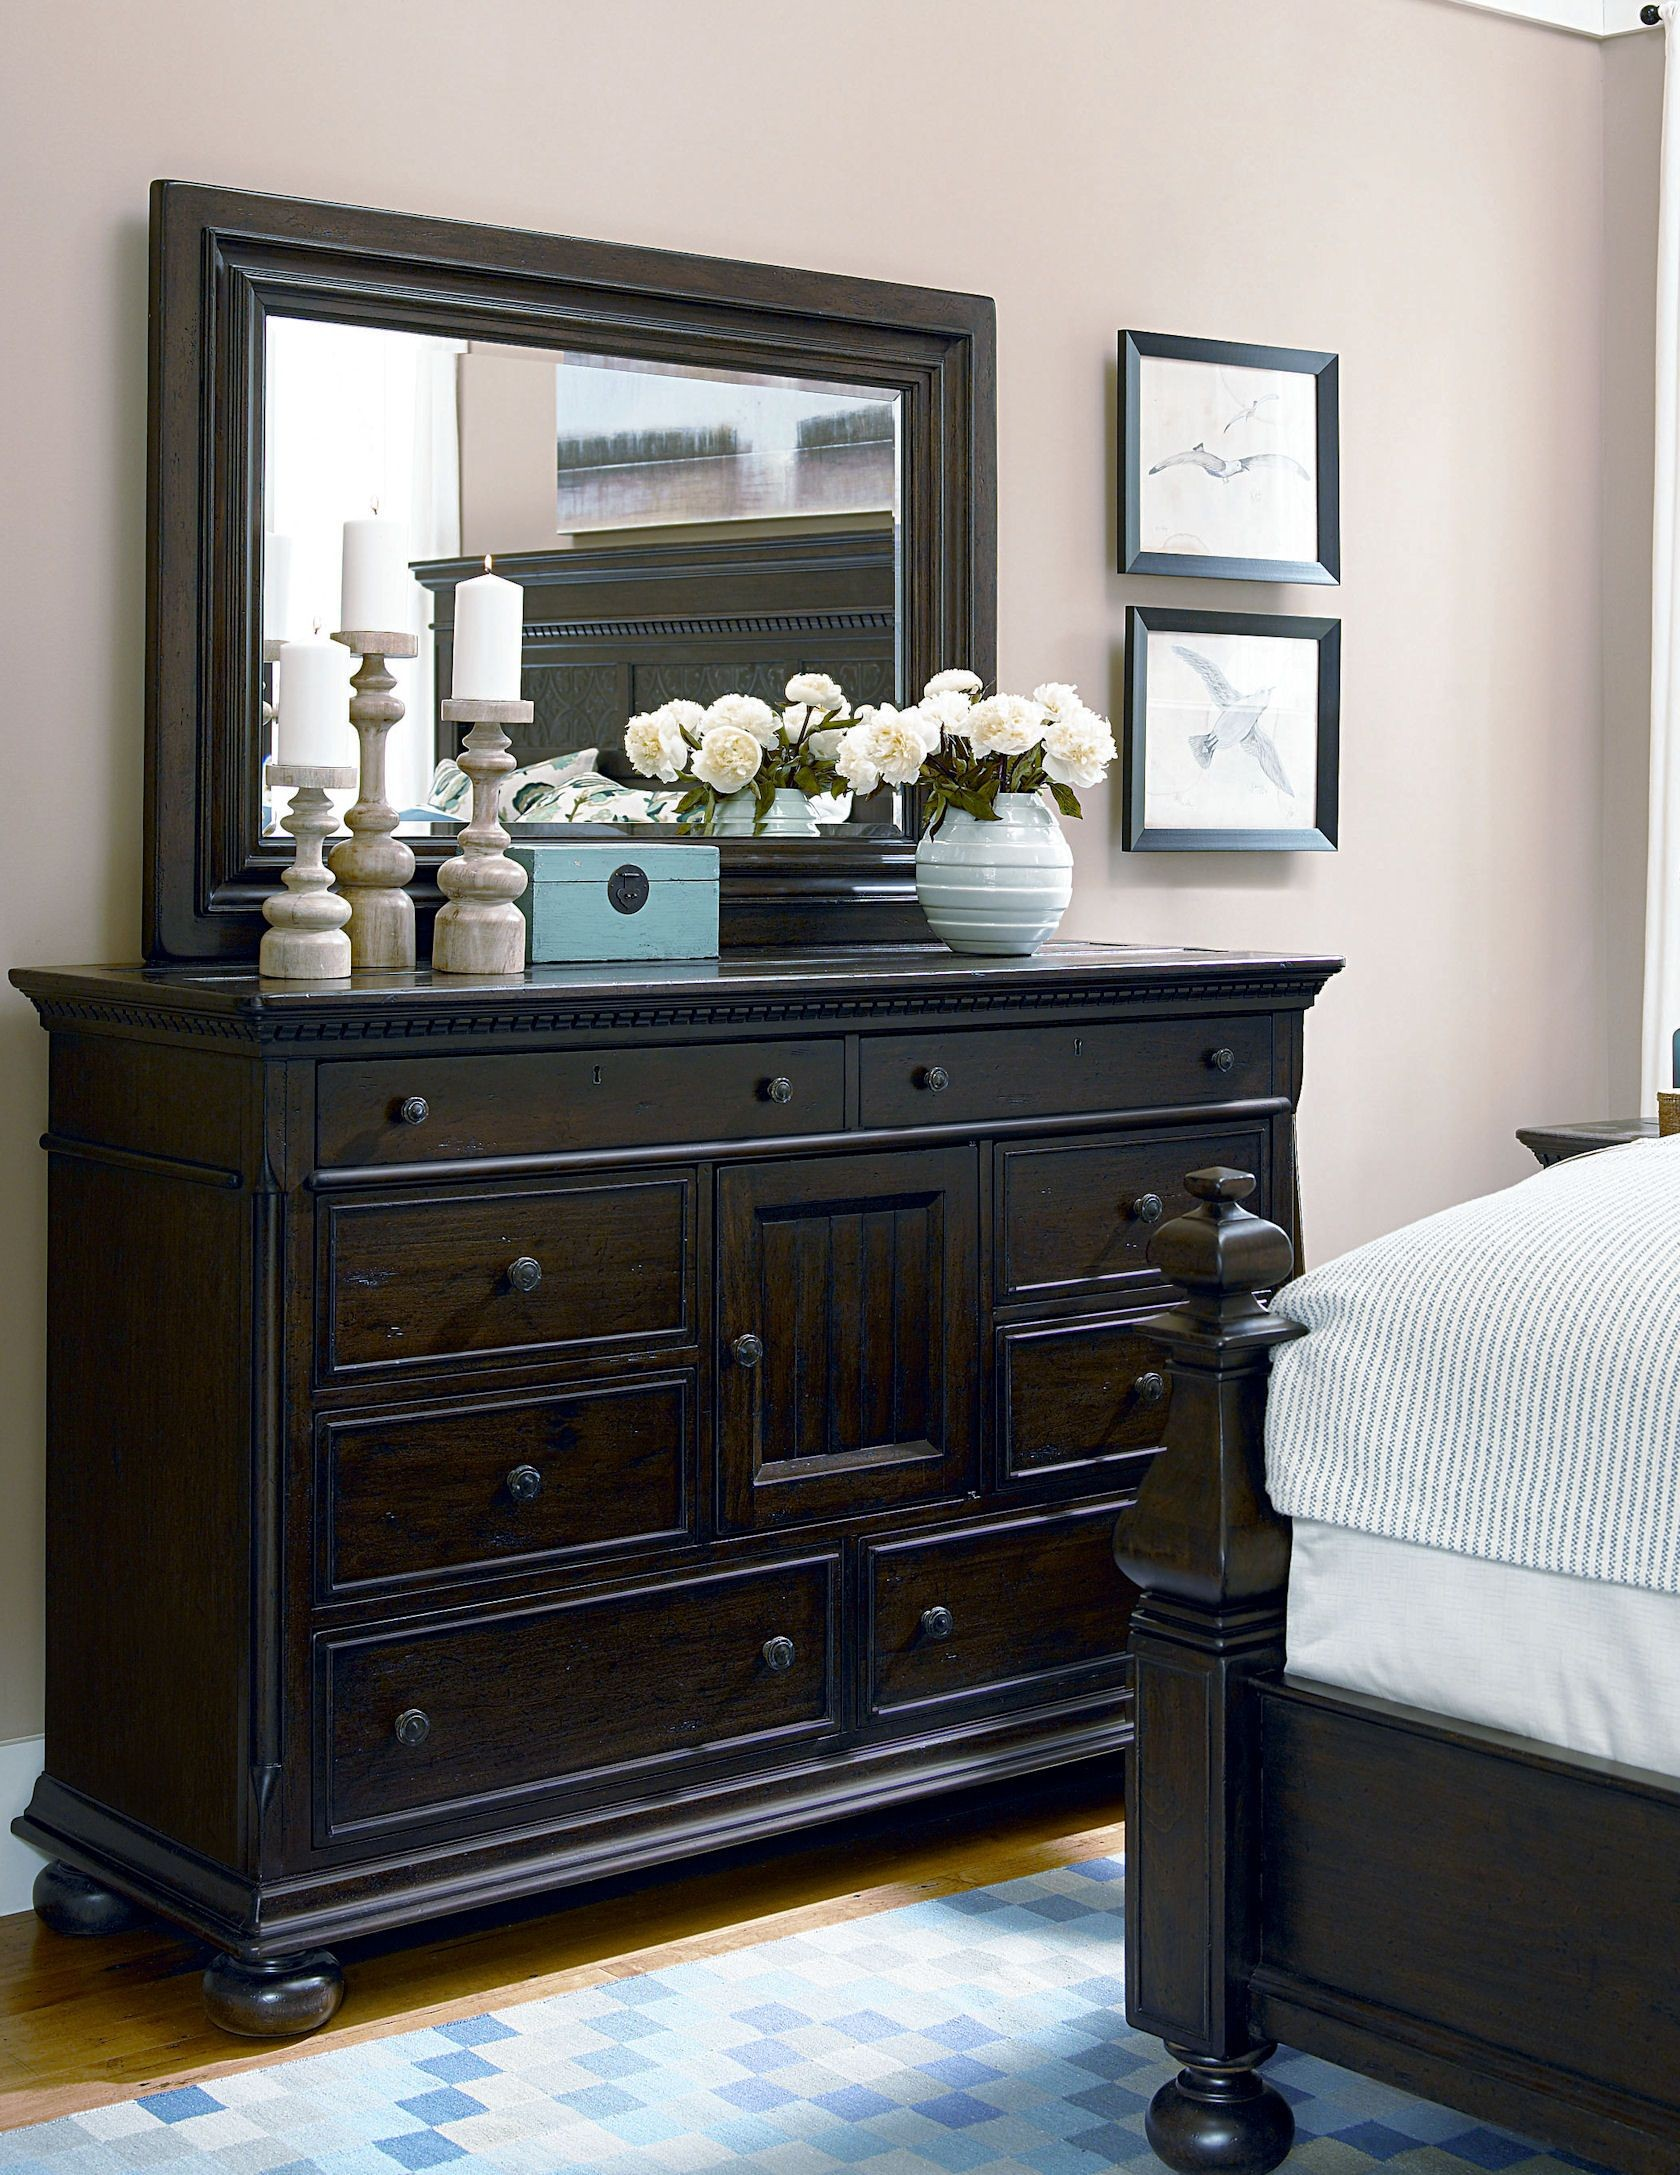 Down home molasses bedroom set from paula deen 193280b coleman furniture - Paula deen furniture for sale ...